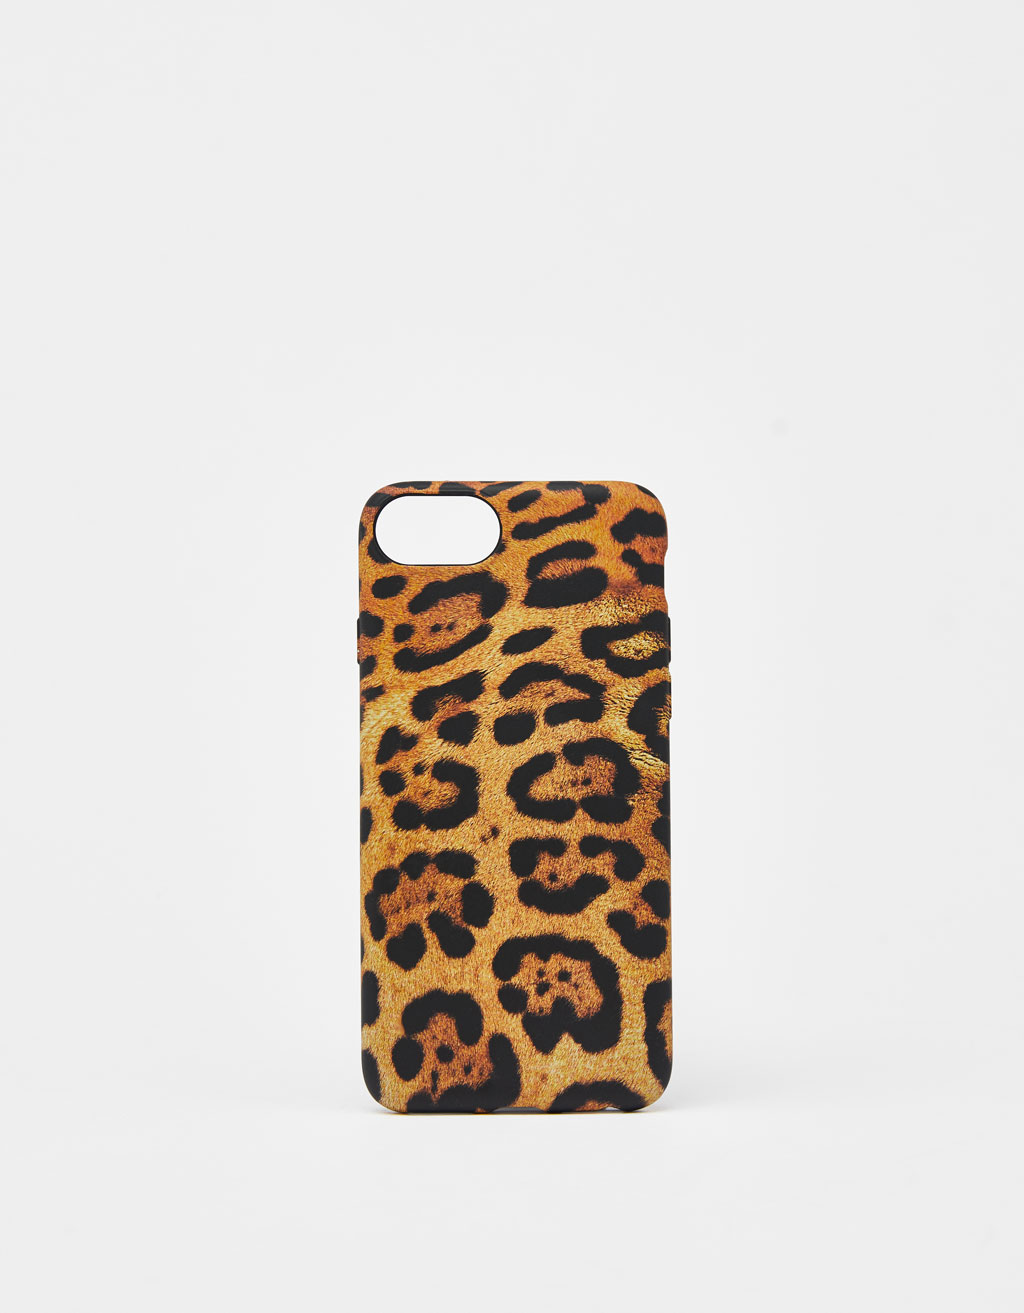 Carcasa de leopardo iPhone 6 /6s/7/8